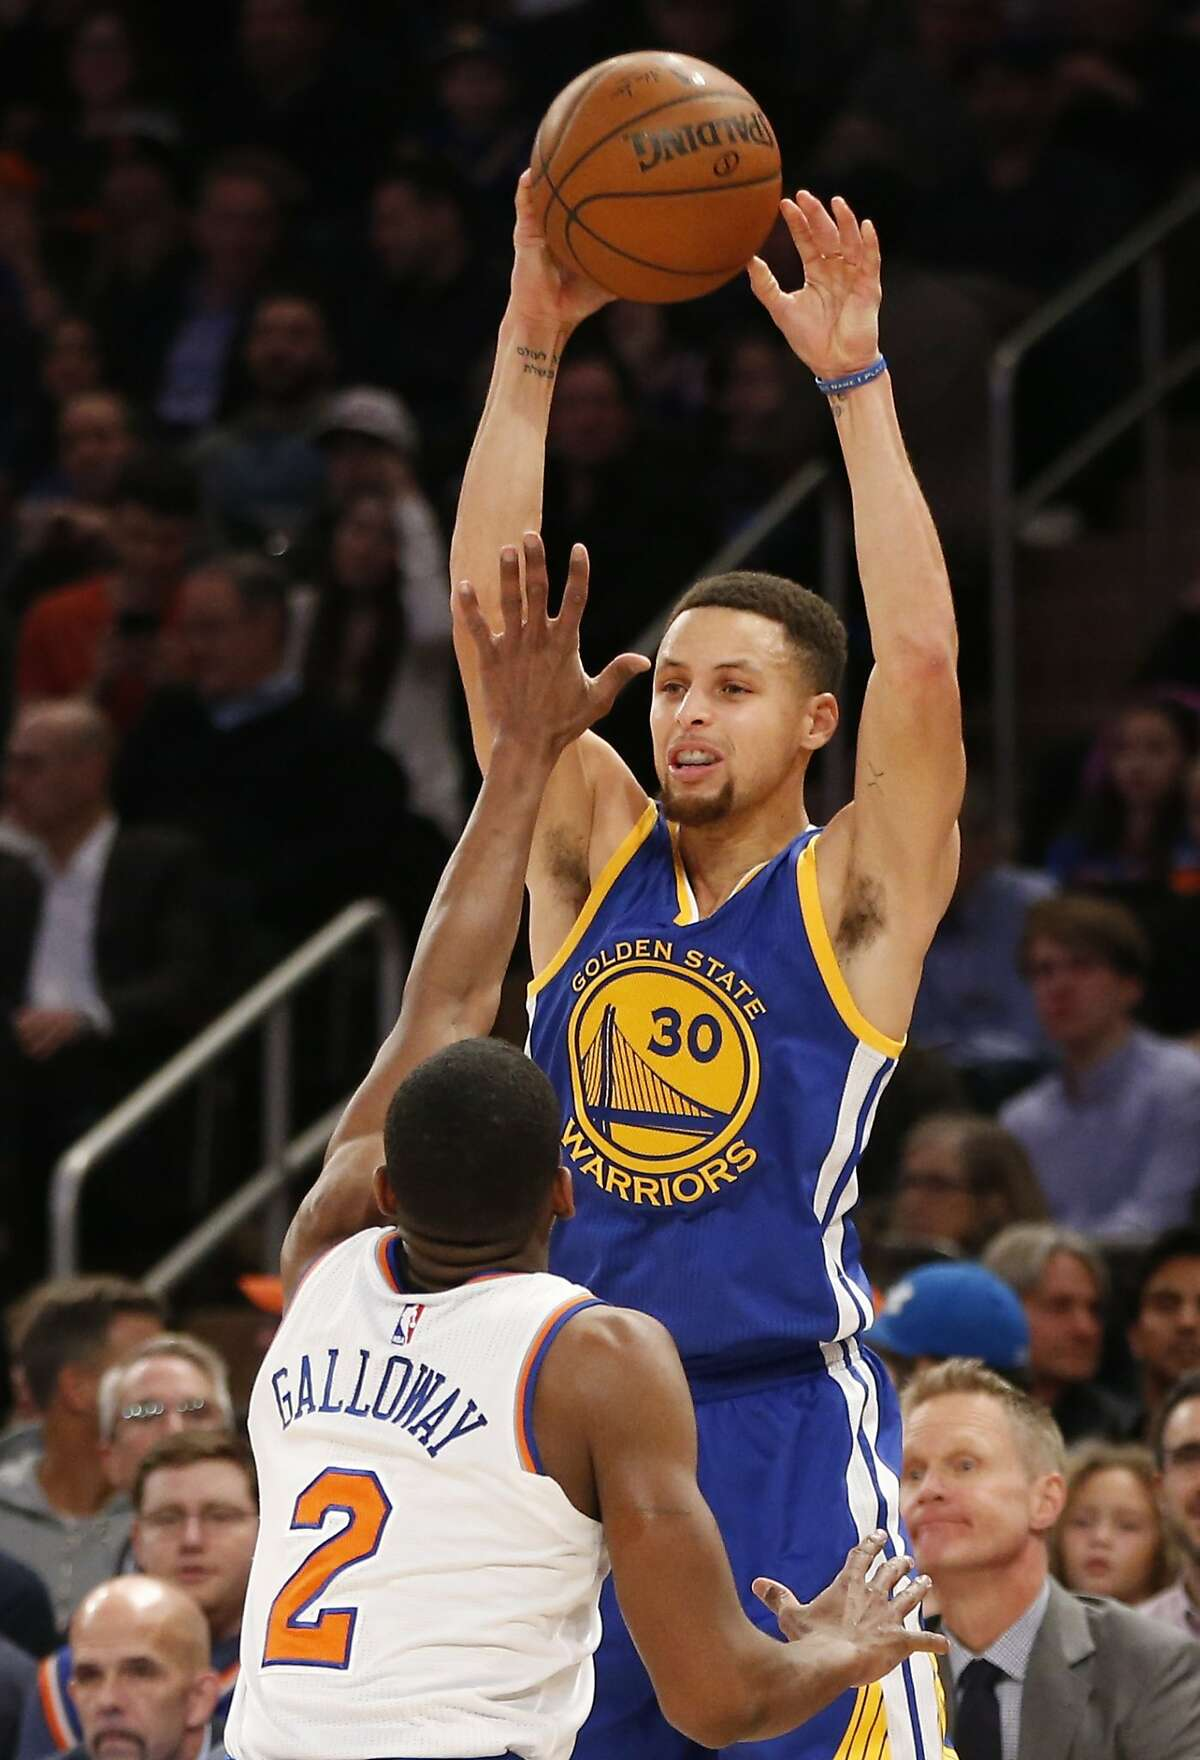 Golden State Warriors guard Stephen Curry passes over New York Knicks guard Langston Galloway in the first half of an NBA basketball game at Madison Square Garden in New York, Sunday, Jan. 31, 2016.